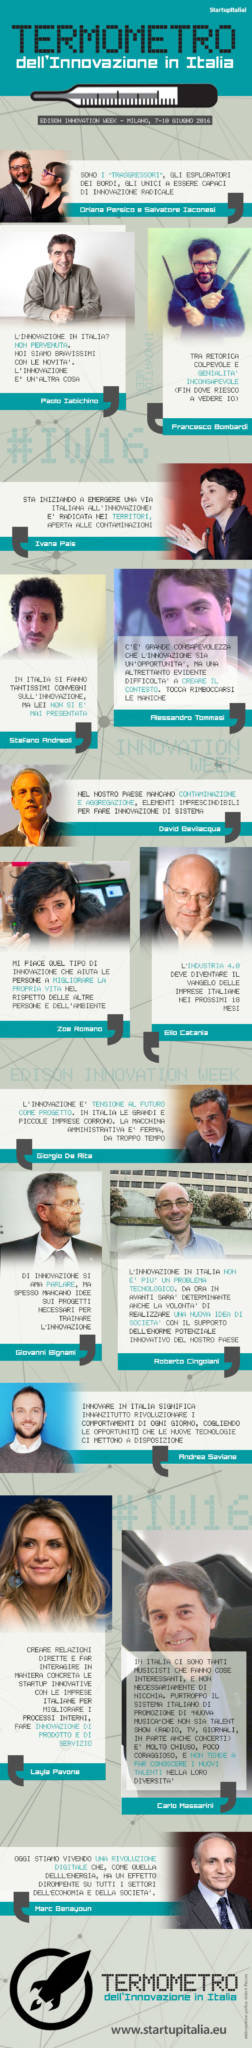 INNOVATION-WEEK_infografica-quote-2